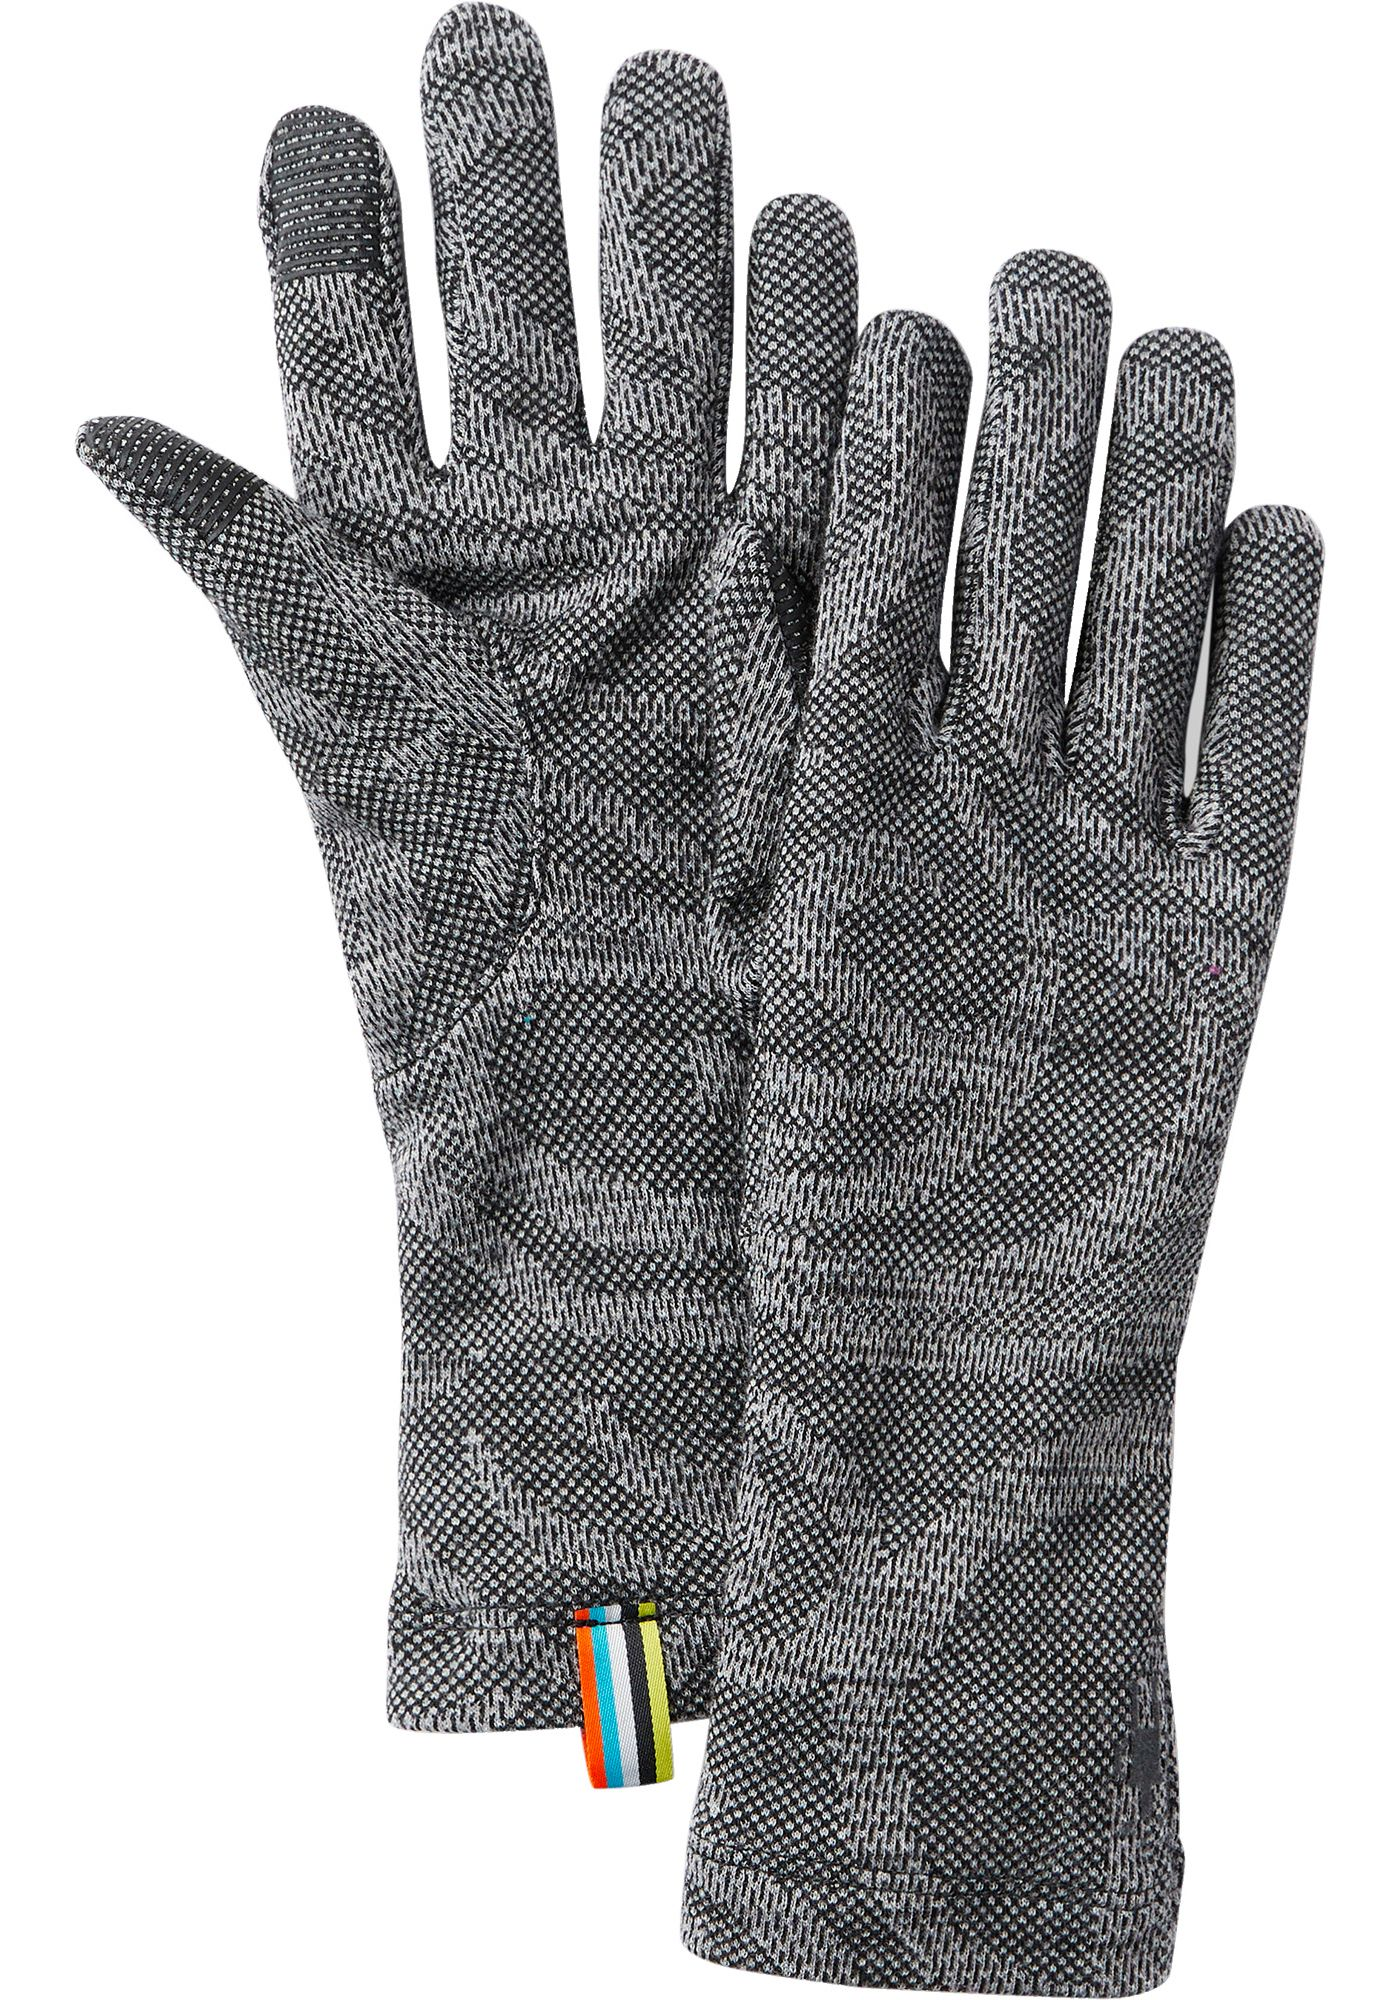 Smartwool Merino 250 Pattern Gloves